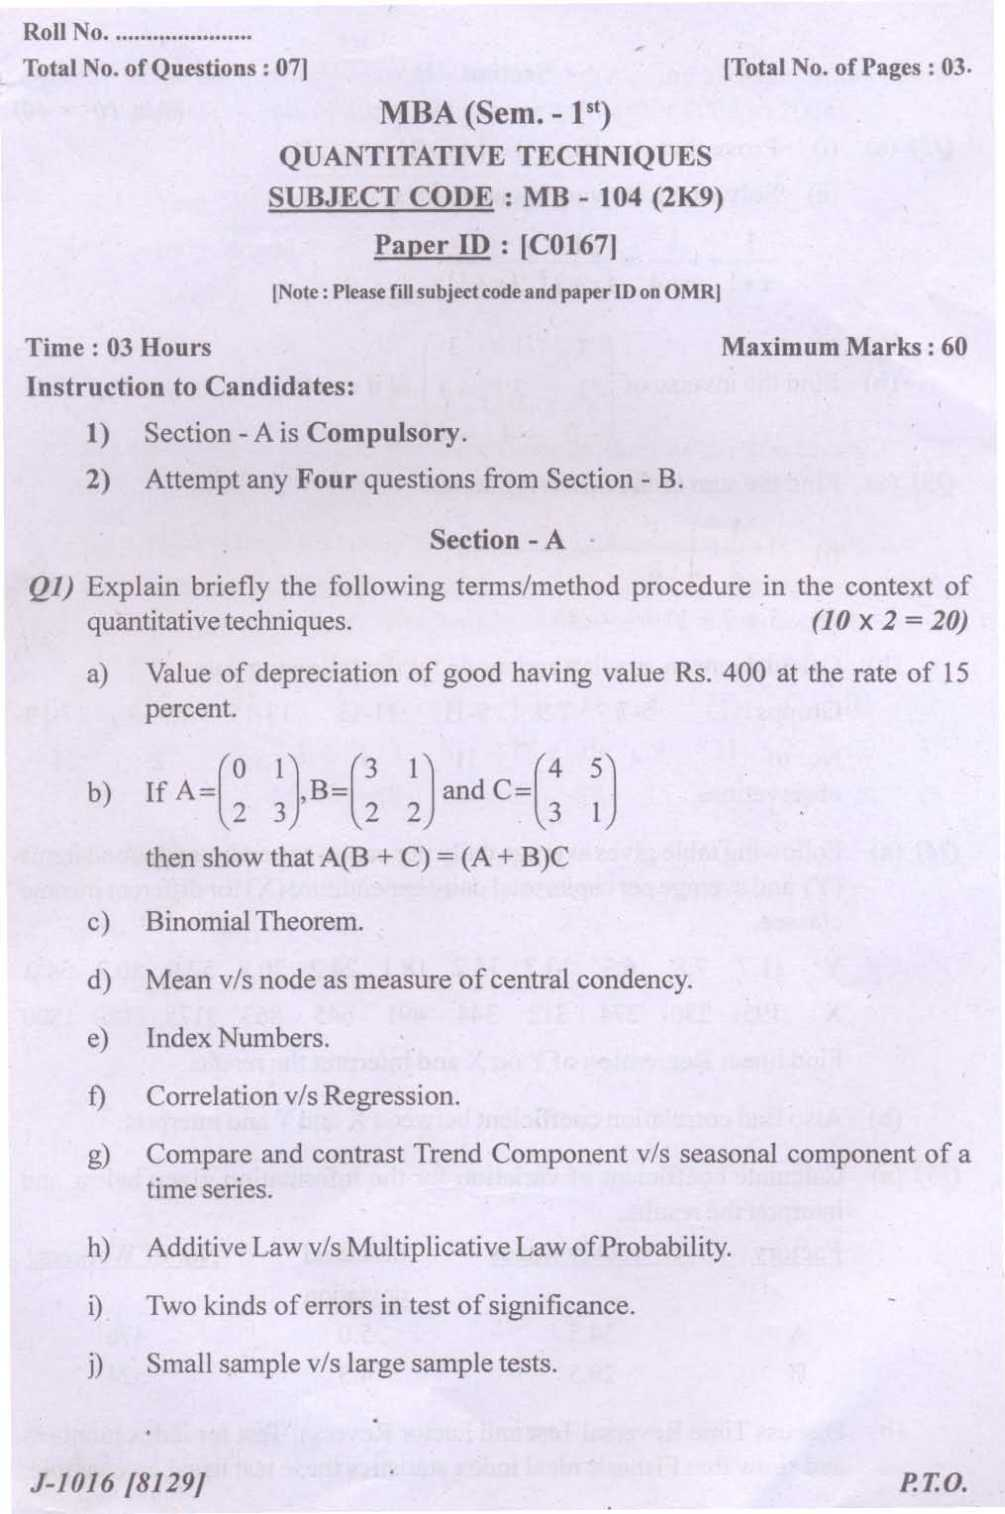 mba ptu question paper We provide some valuable notes & question papers of bscit, bca, pgdca, mscit, mca, also study material for panjab university chandigarh, punjab technical university students kurukshetra university question papers and notes, sikkim manipal univery question papers and notes.